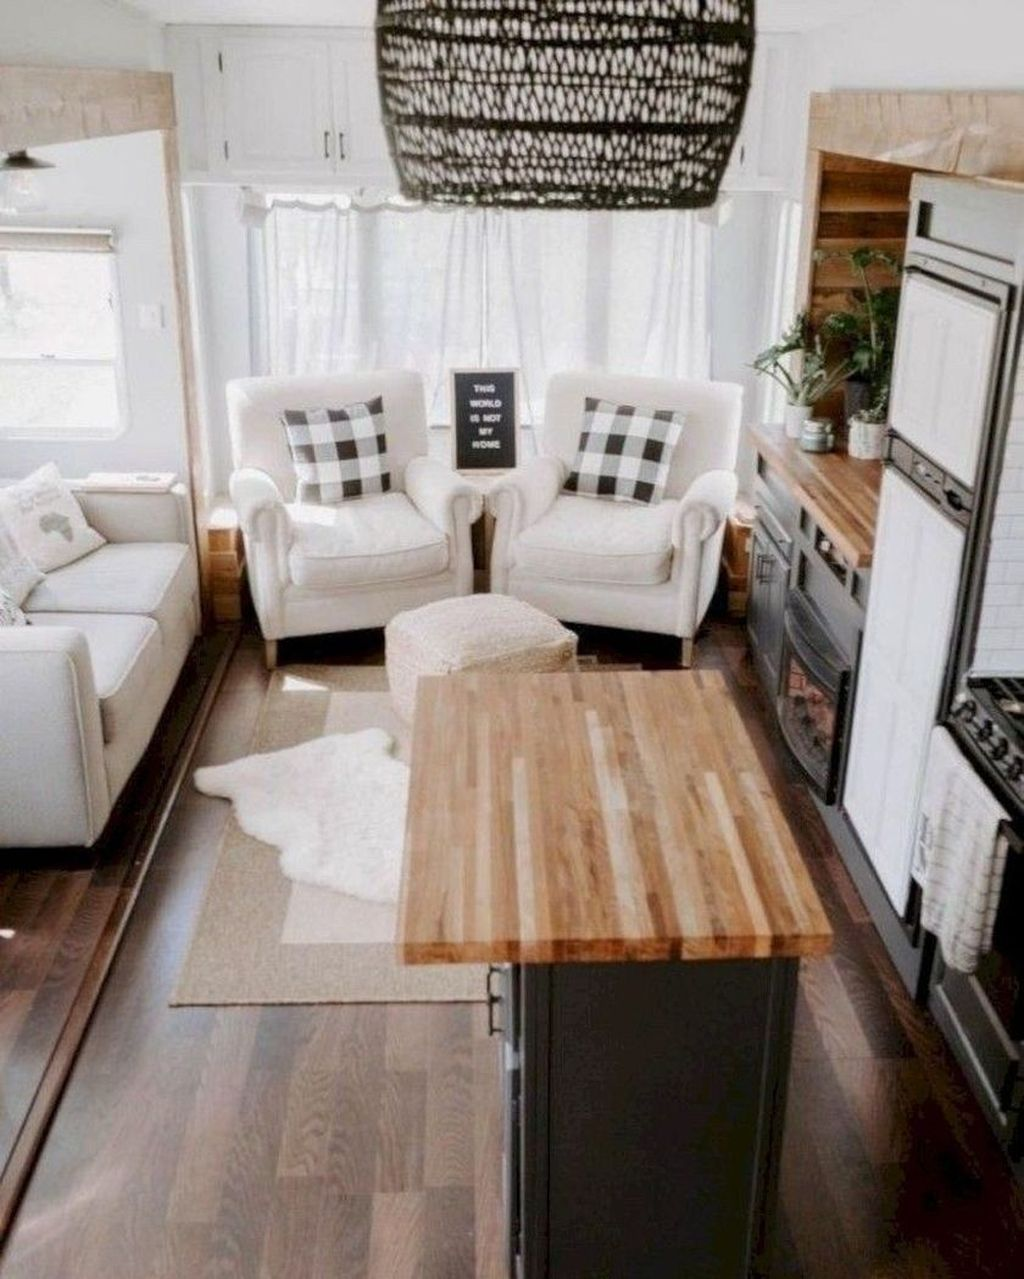 37 Fancy Rv Living Design Ideas For This Year Trenduhome In 2020 Rv Living Travel Trailer Remodel Home Living on one dollar trailer